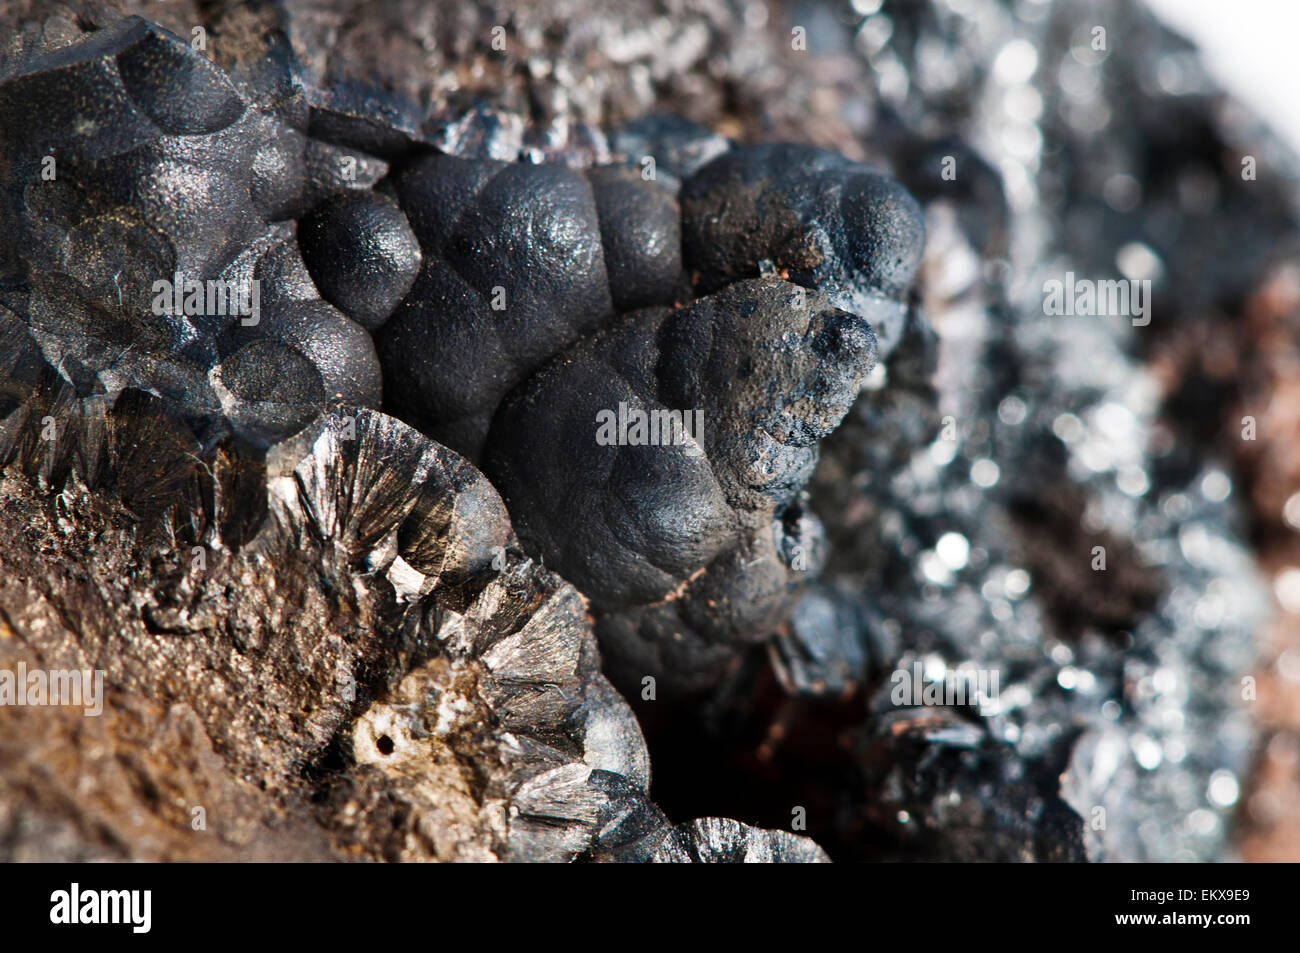 Closeup detail of a goethite mineral - Stock Image